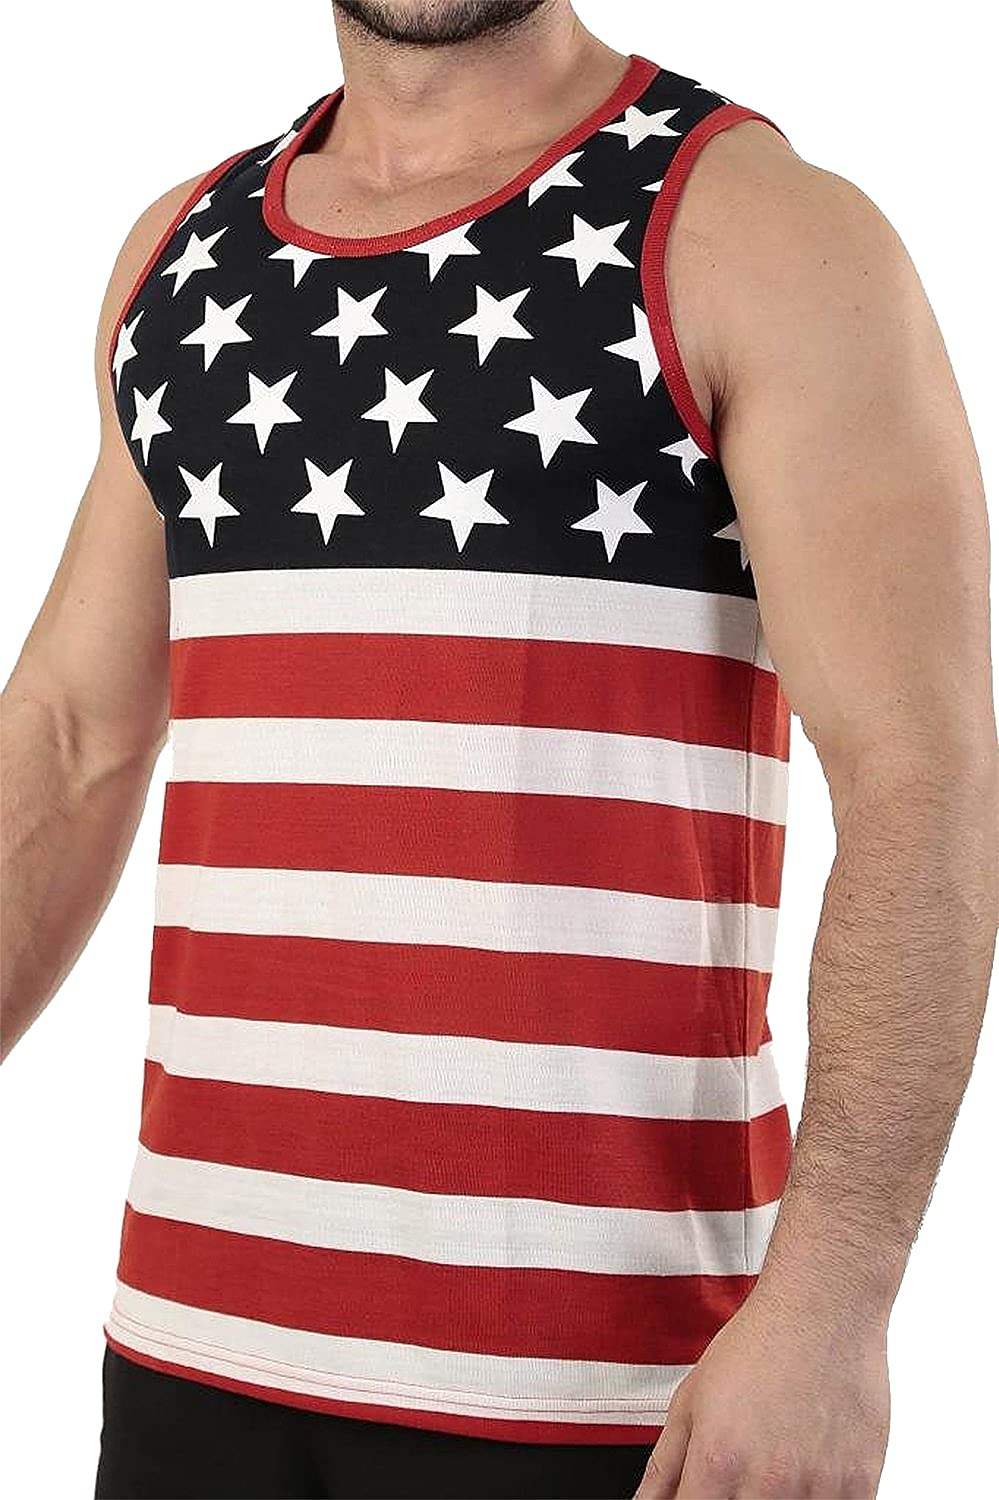 Licensed Mart Mens American Flag Stripes and Stars Tank Top Shirt